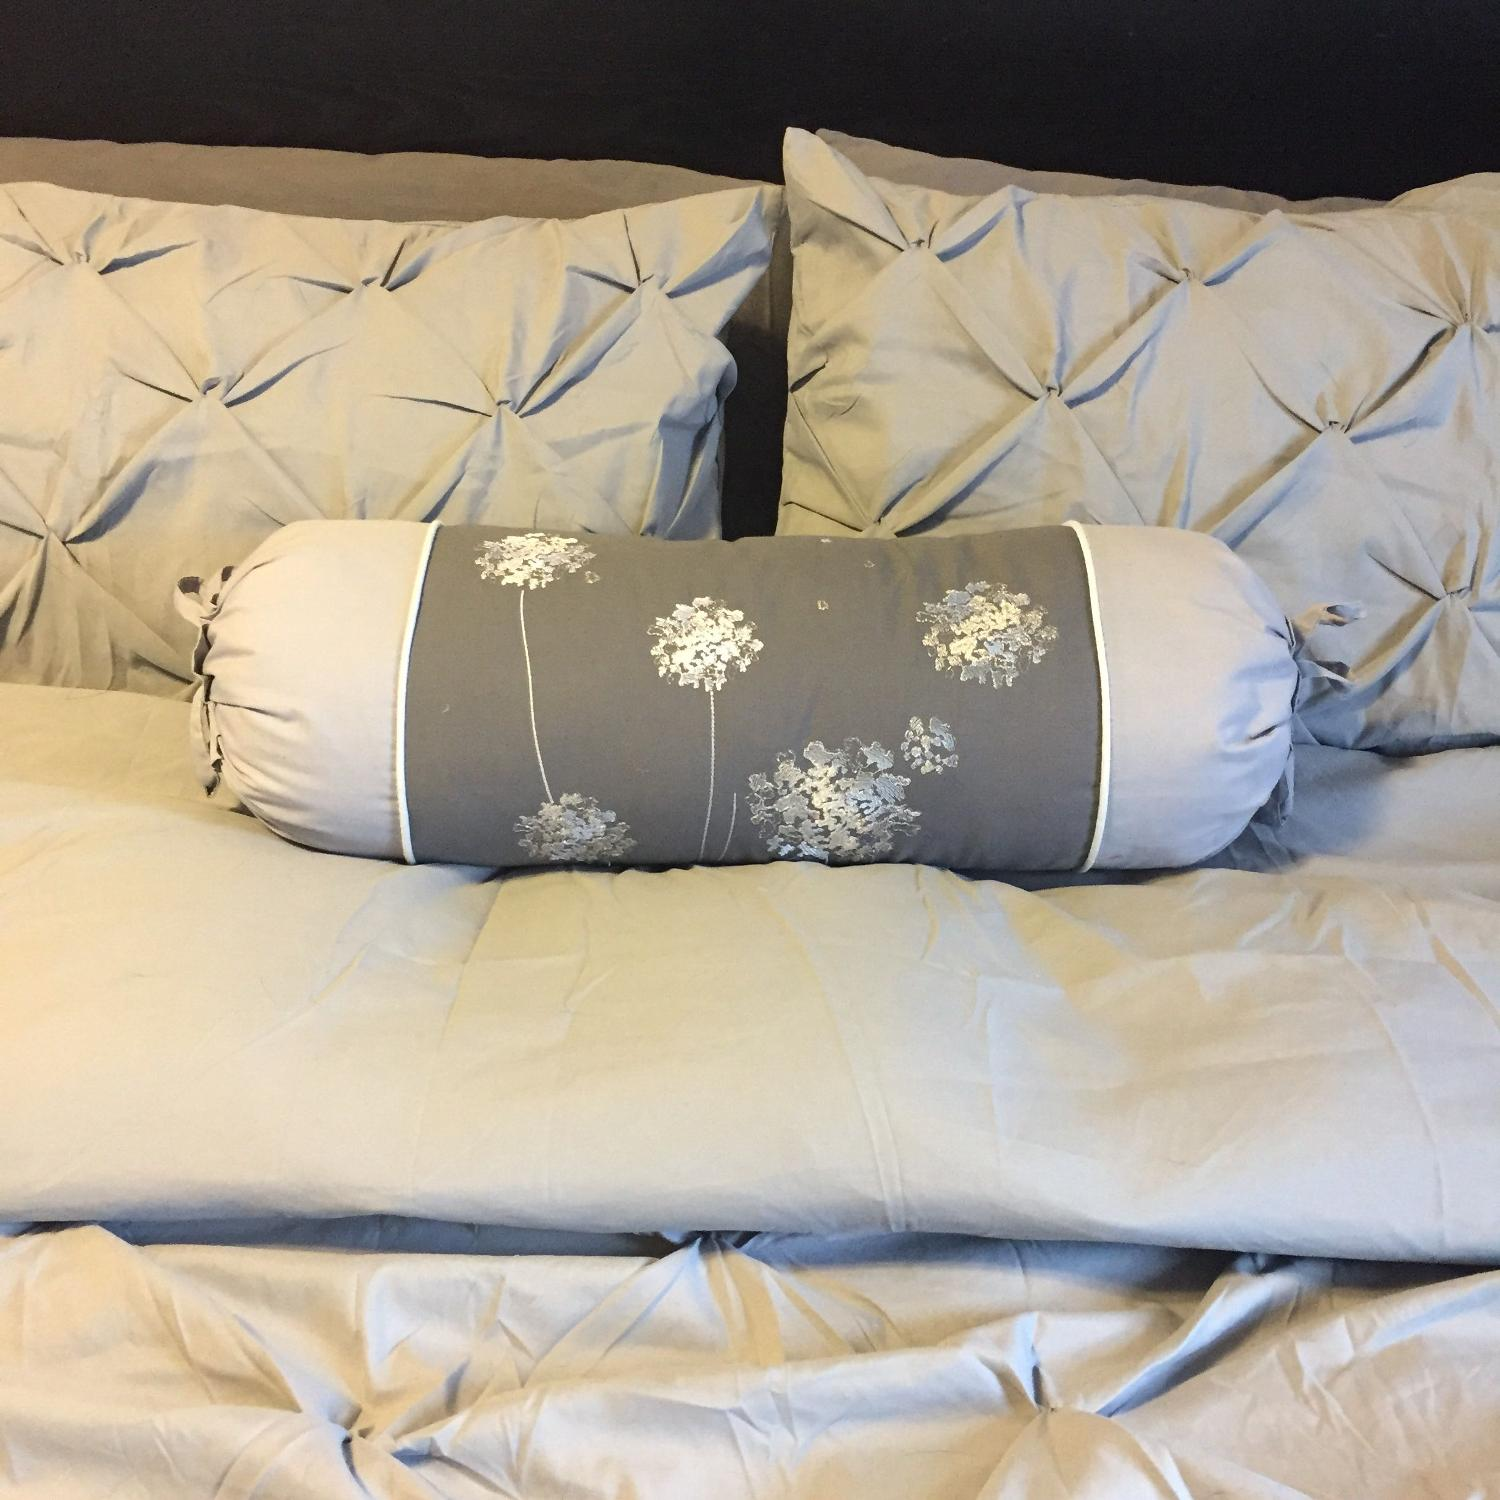 Find more Grey Decorative Pillow for sale at up to 90% off